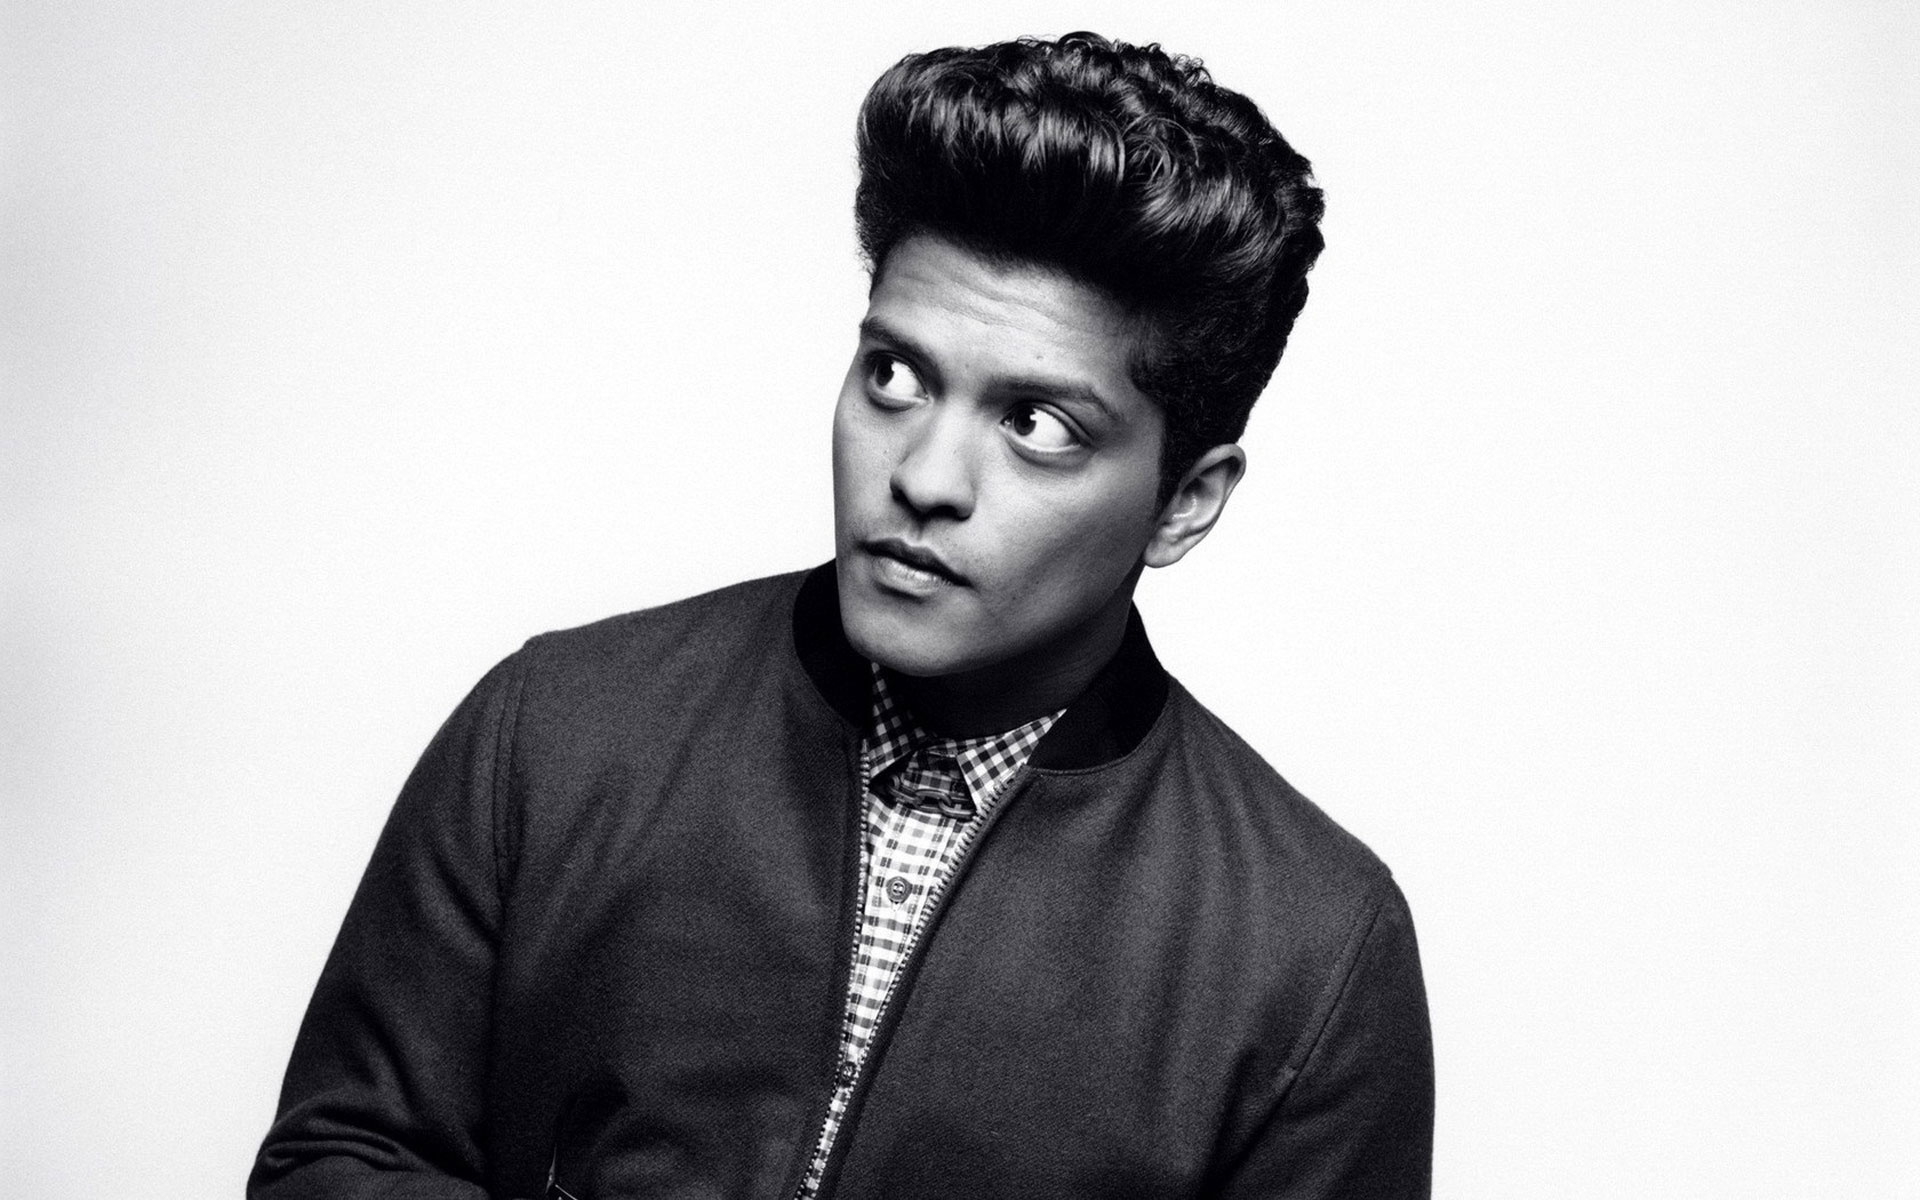 bruno-mars-24k-magic-retour.jpg (1920×1200)